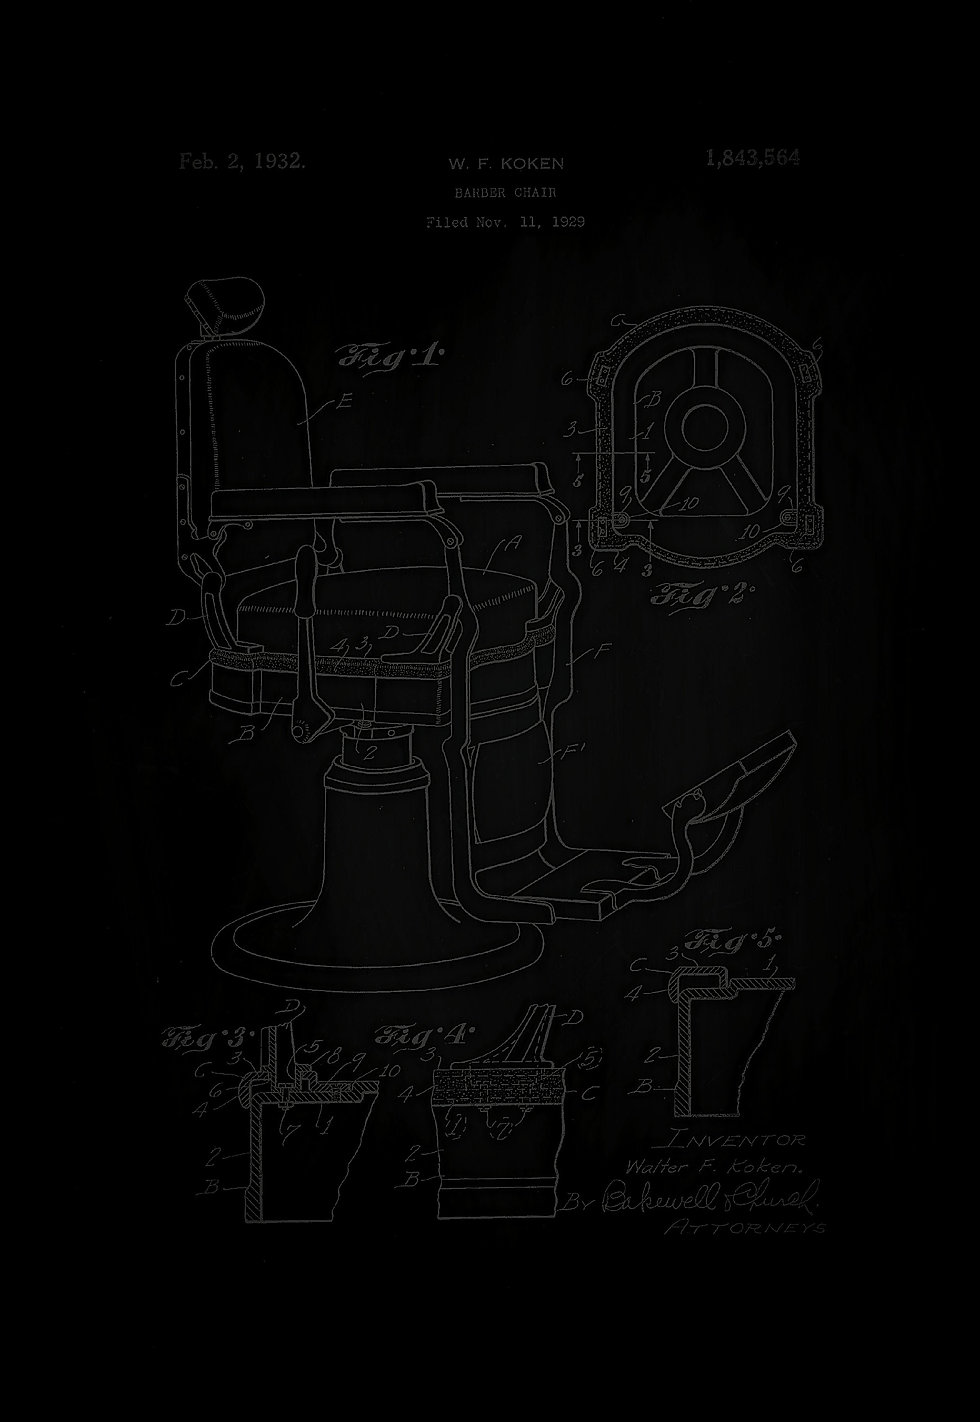 Barber Chair 1929 Patent